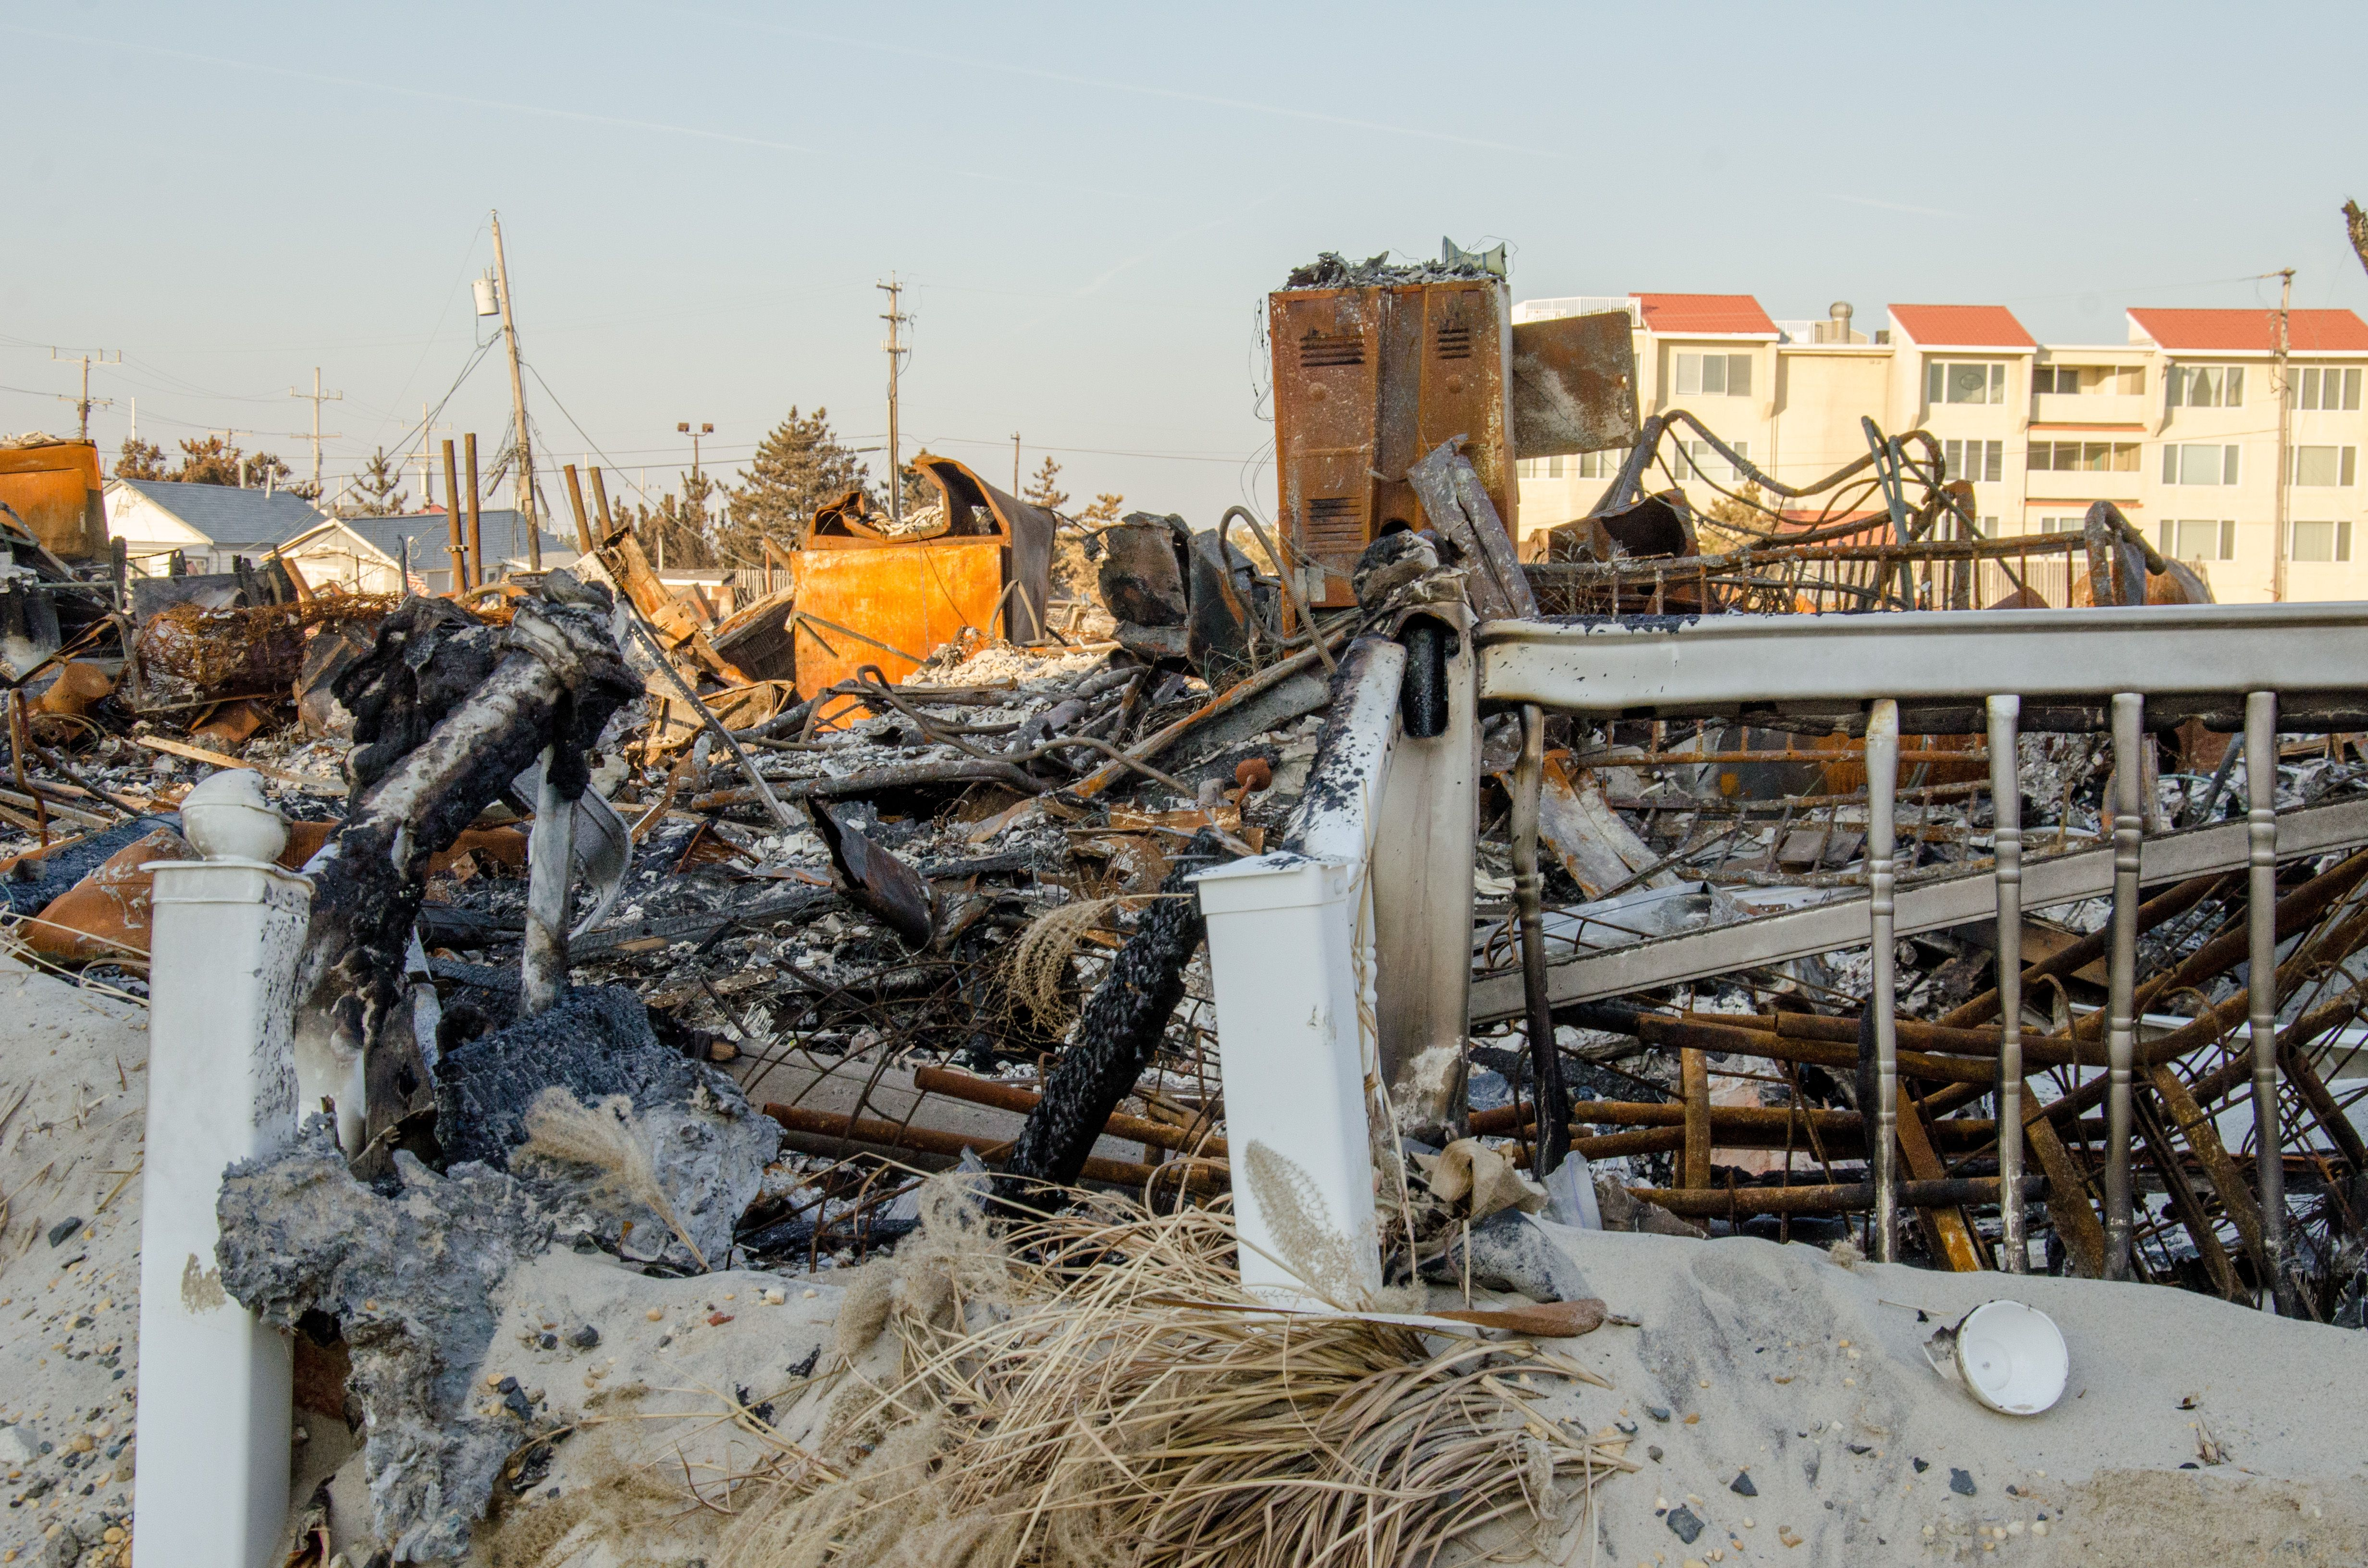 brick nj photos | ... Library: Homes Destroyed by Fire During Hurricane Sandy in Brick, NJ